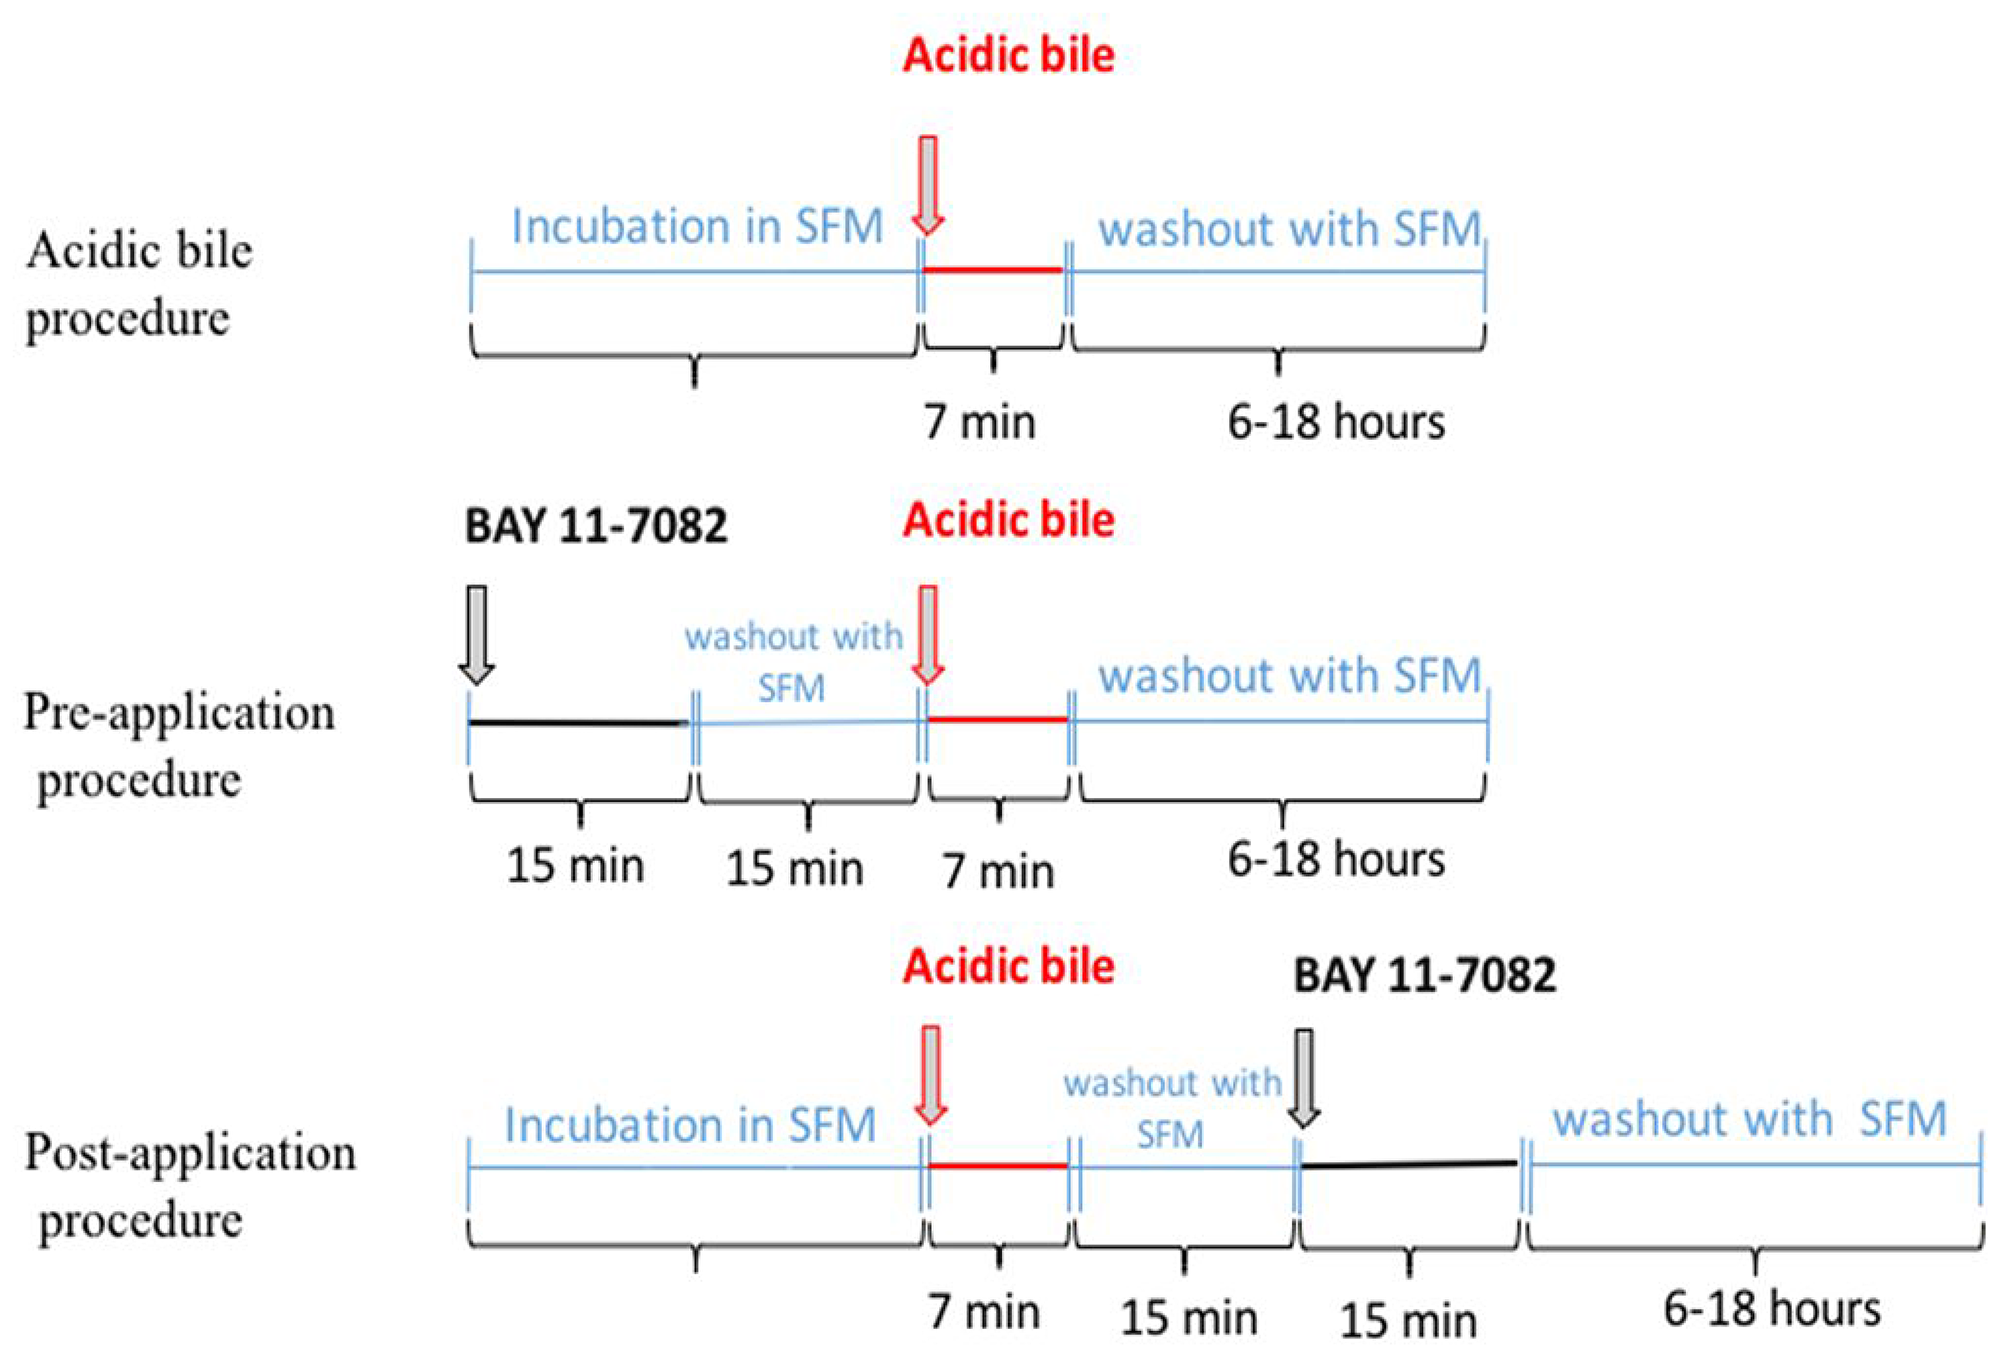 Schematic representation of pre- and post-application of NF-κB inhibitor (BAY 11-7082) in acidic bile-exposed MHPC.